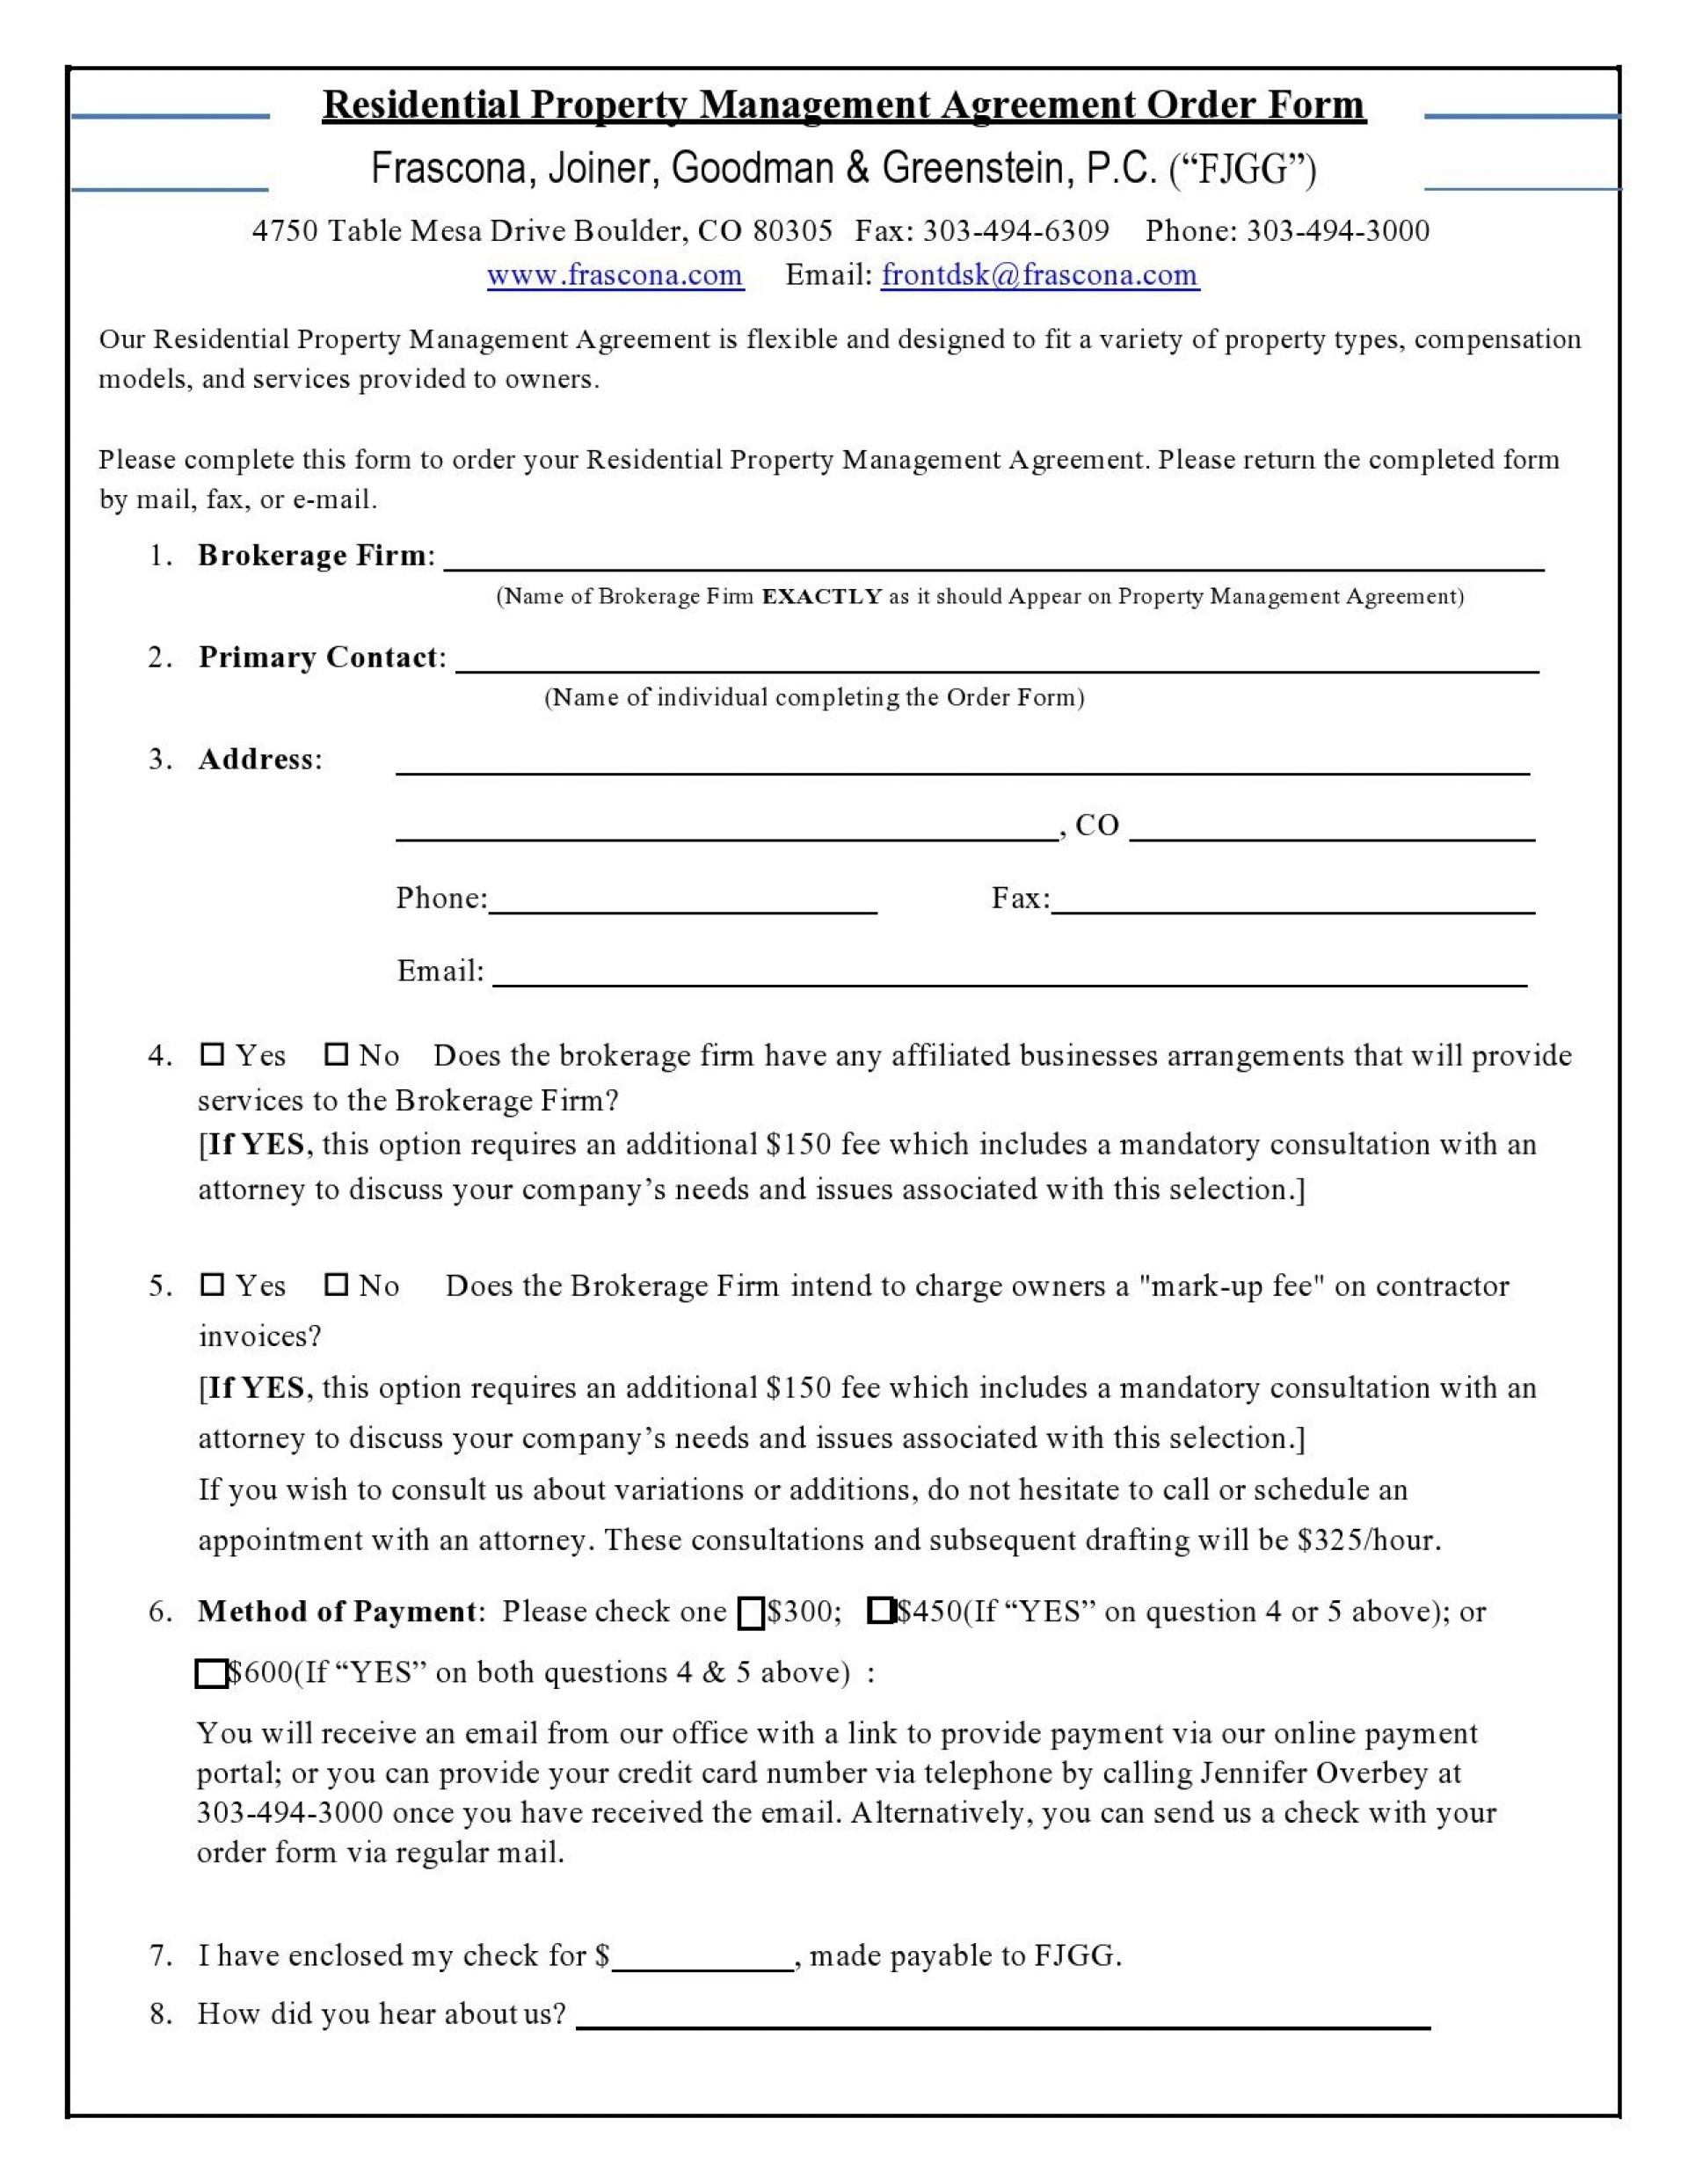 006 Unforgettable Property Management Agreement Template Picture  Templates Sample Termination Of Commercial Form1920